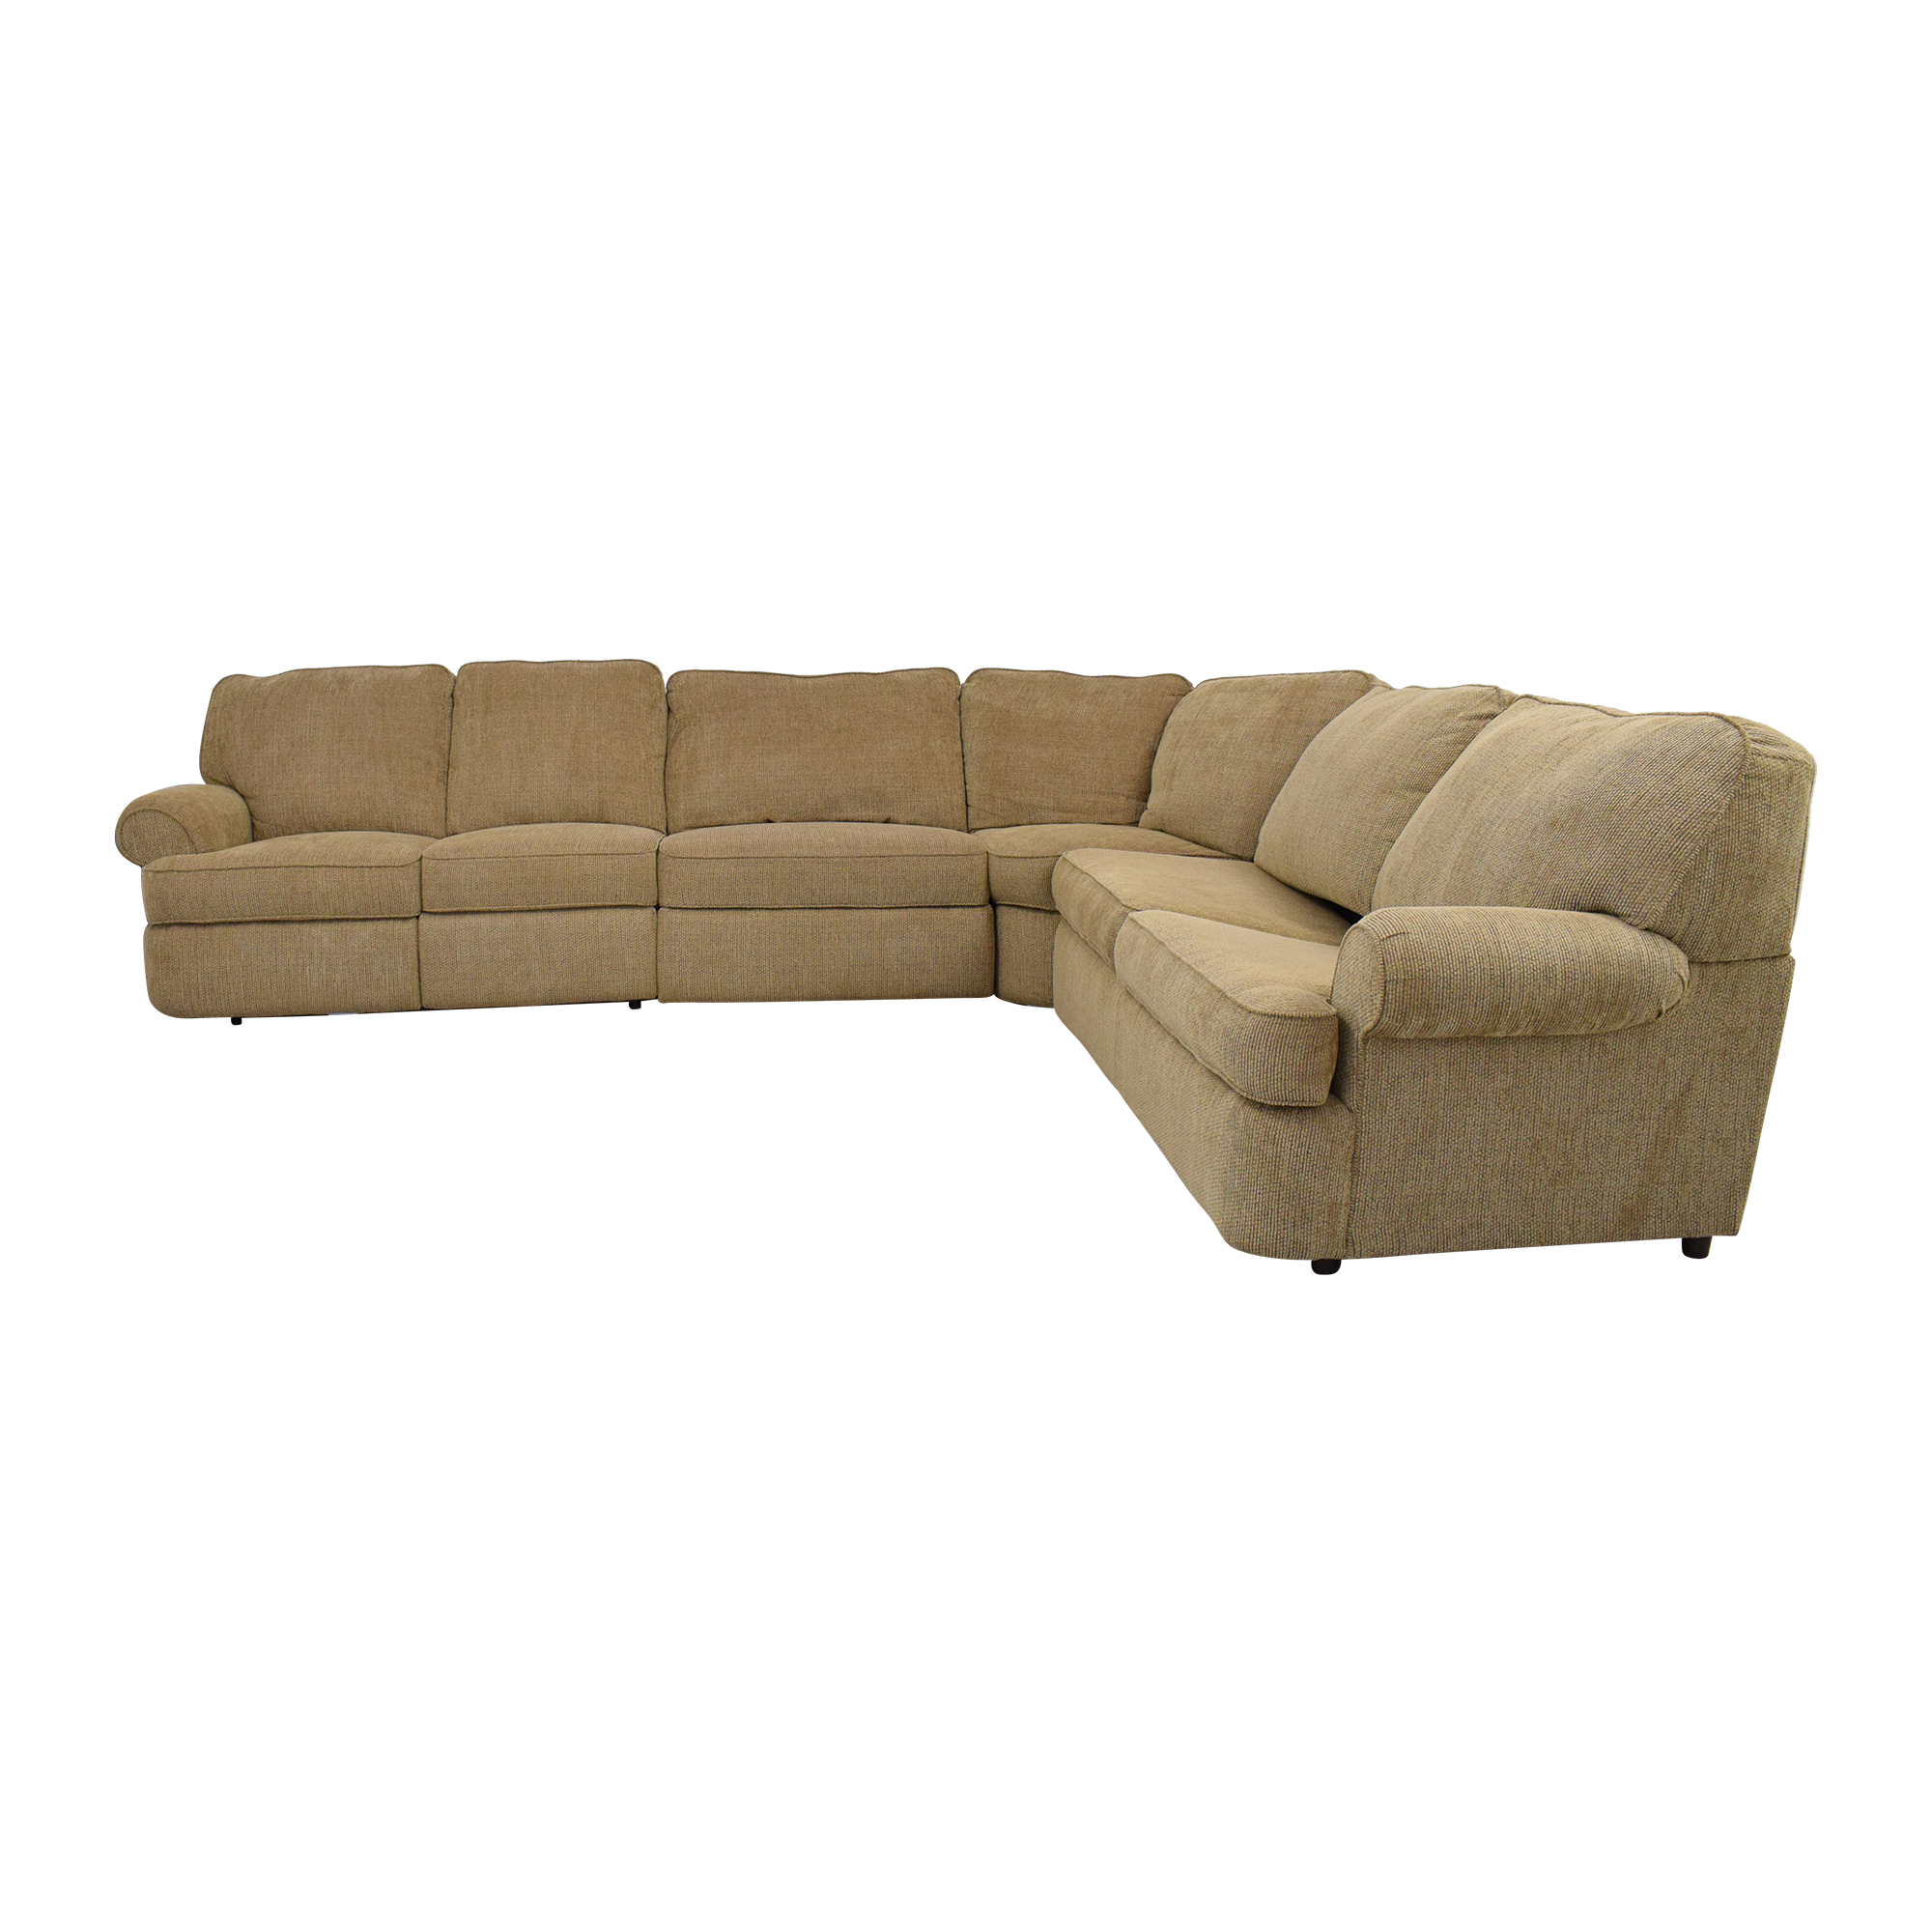 Berkline Berkline Reclining Sectional Full Size Sofa Bed Sofas